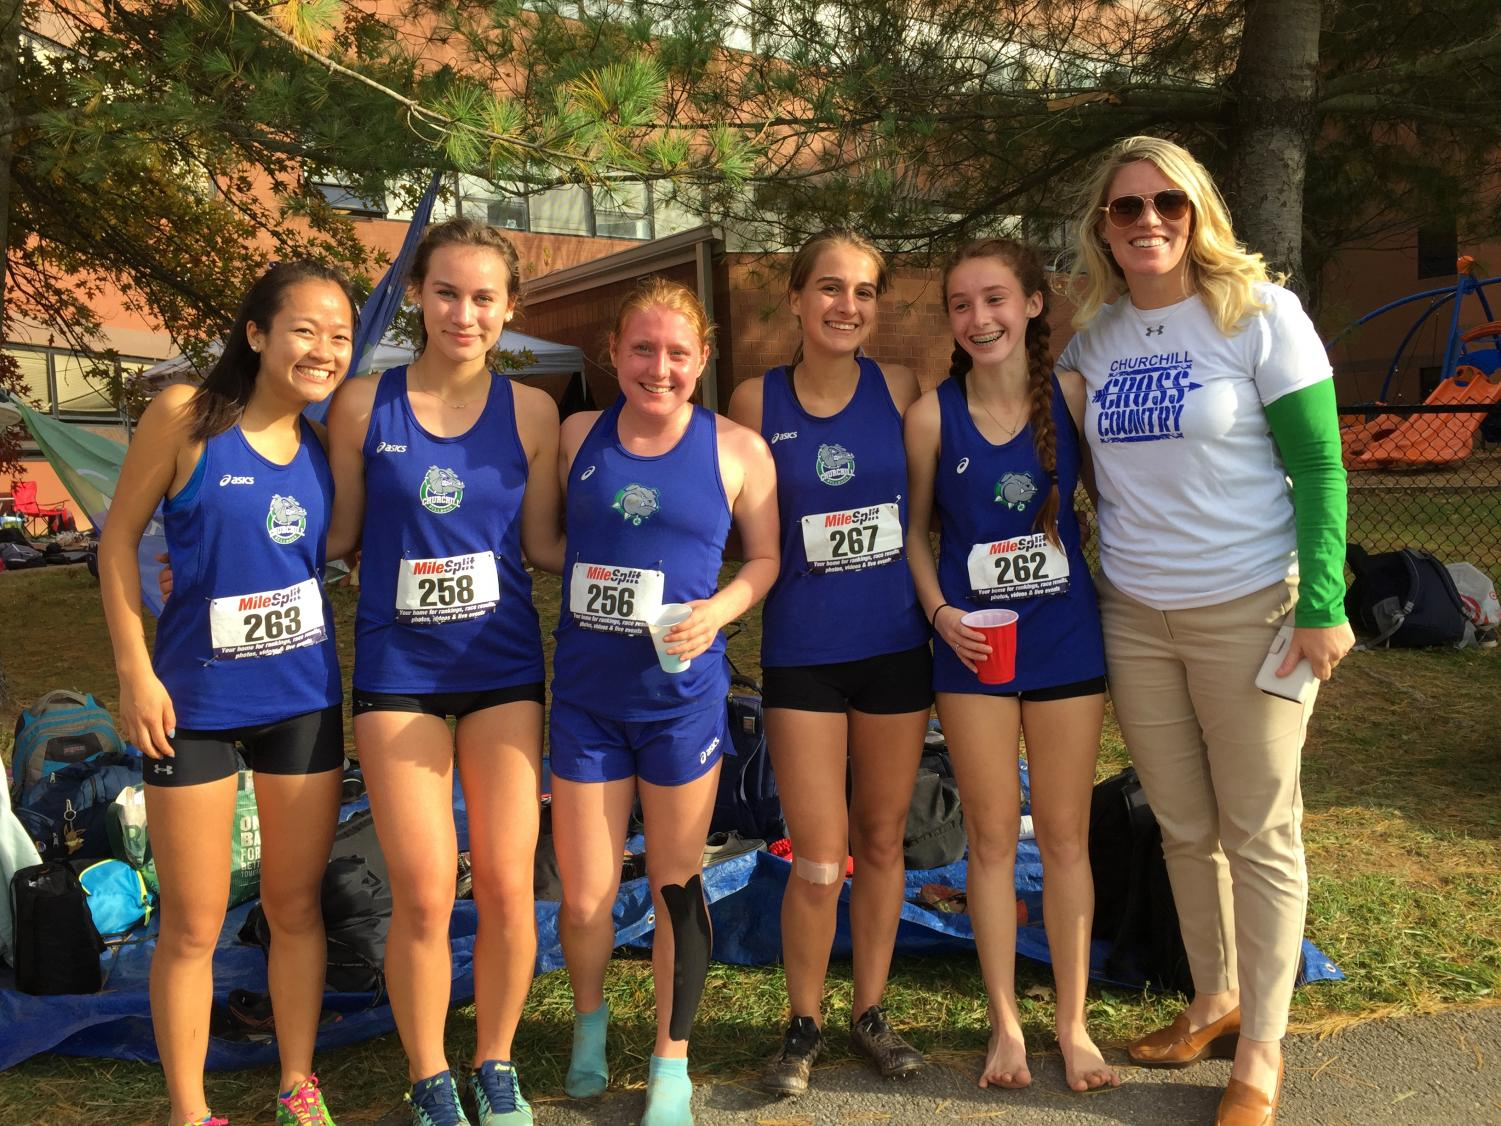 WCHS girls XC runners Lauren Kuo, Jessica Bowen, Lauren Anderson, Laura Sneller and Bridget Kelly pose with Ms. Heckert after a race.